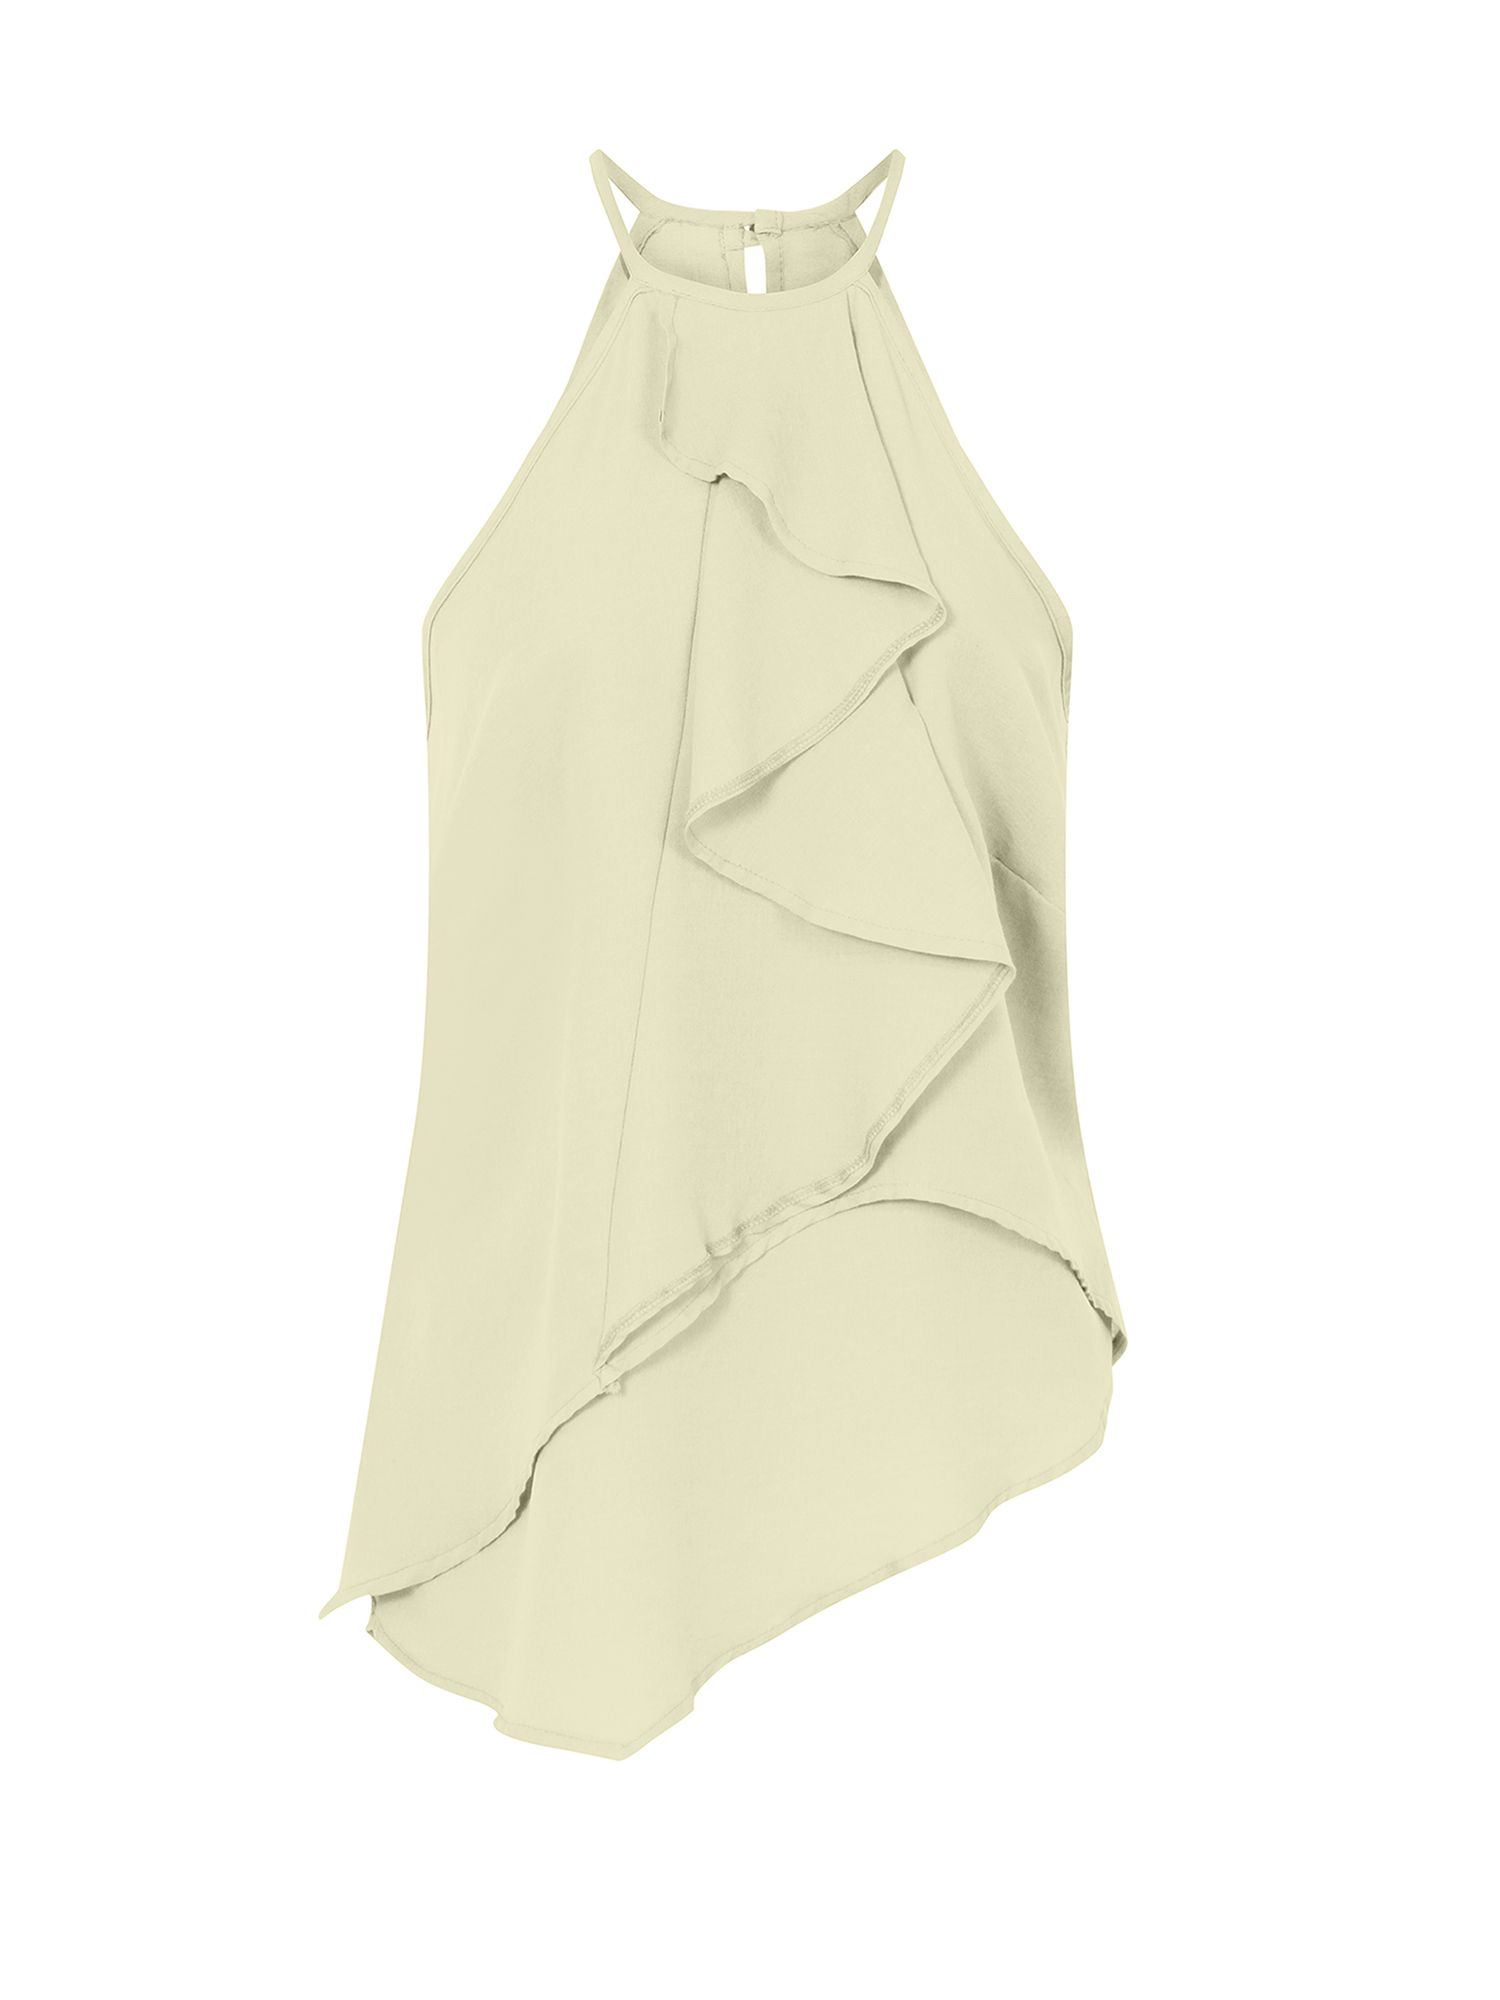 HotSquash Ruffle Halter Neck Top in Clever Fabric, Cream